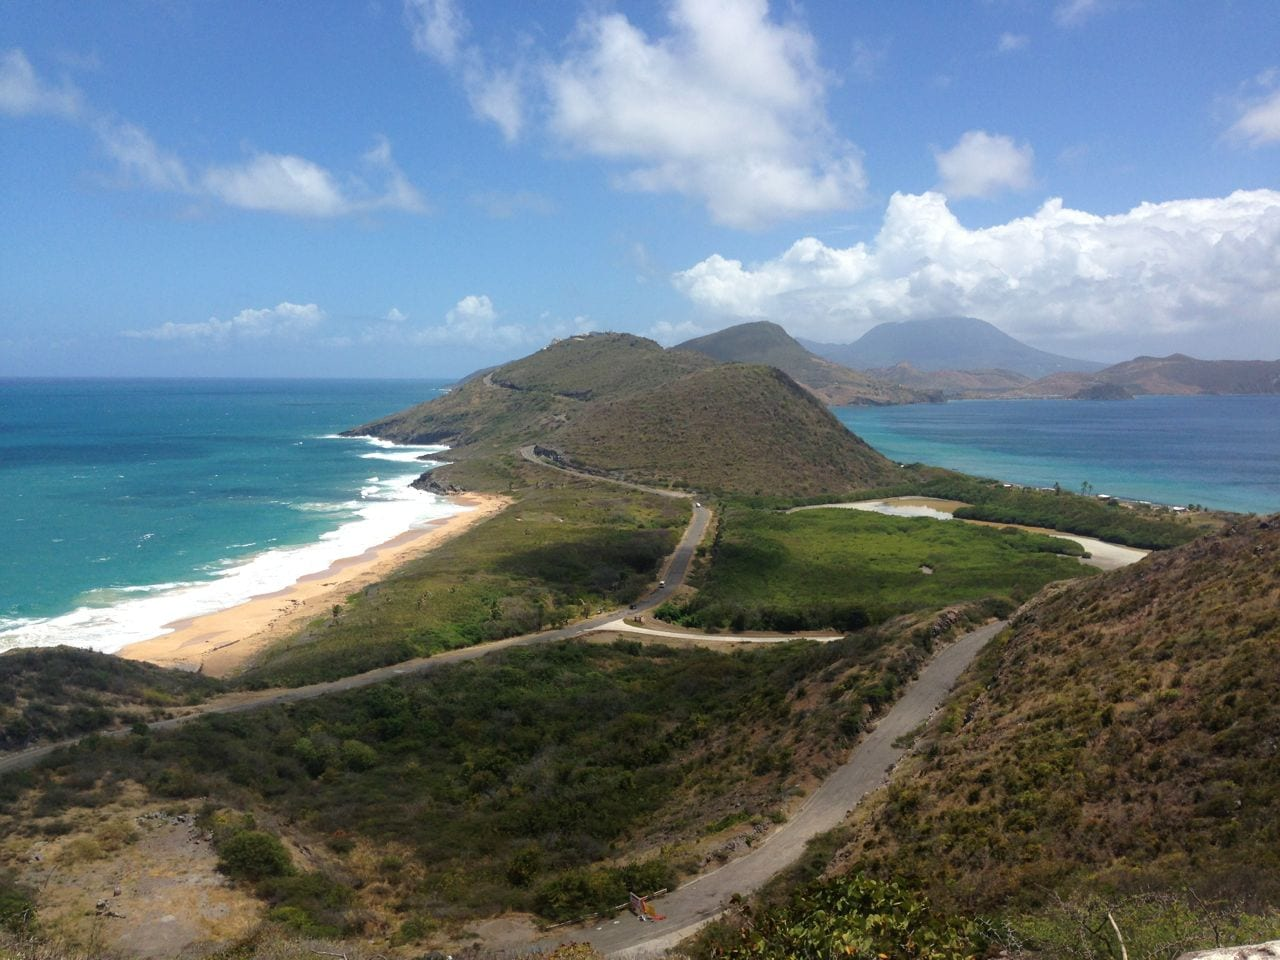 Sugar is so last century